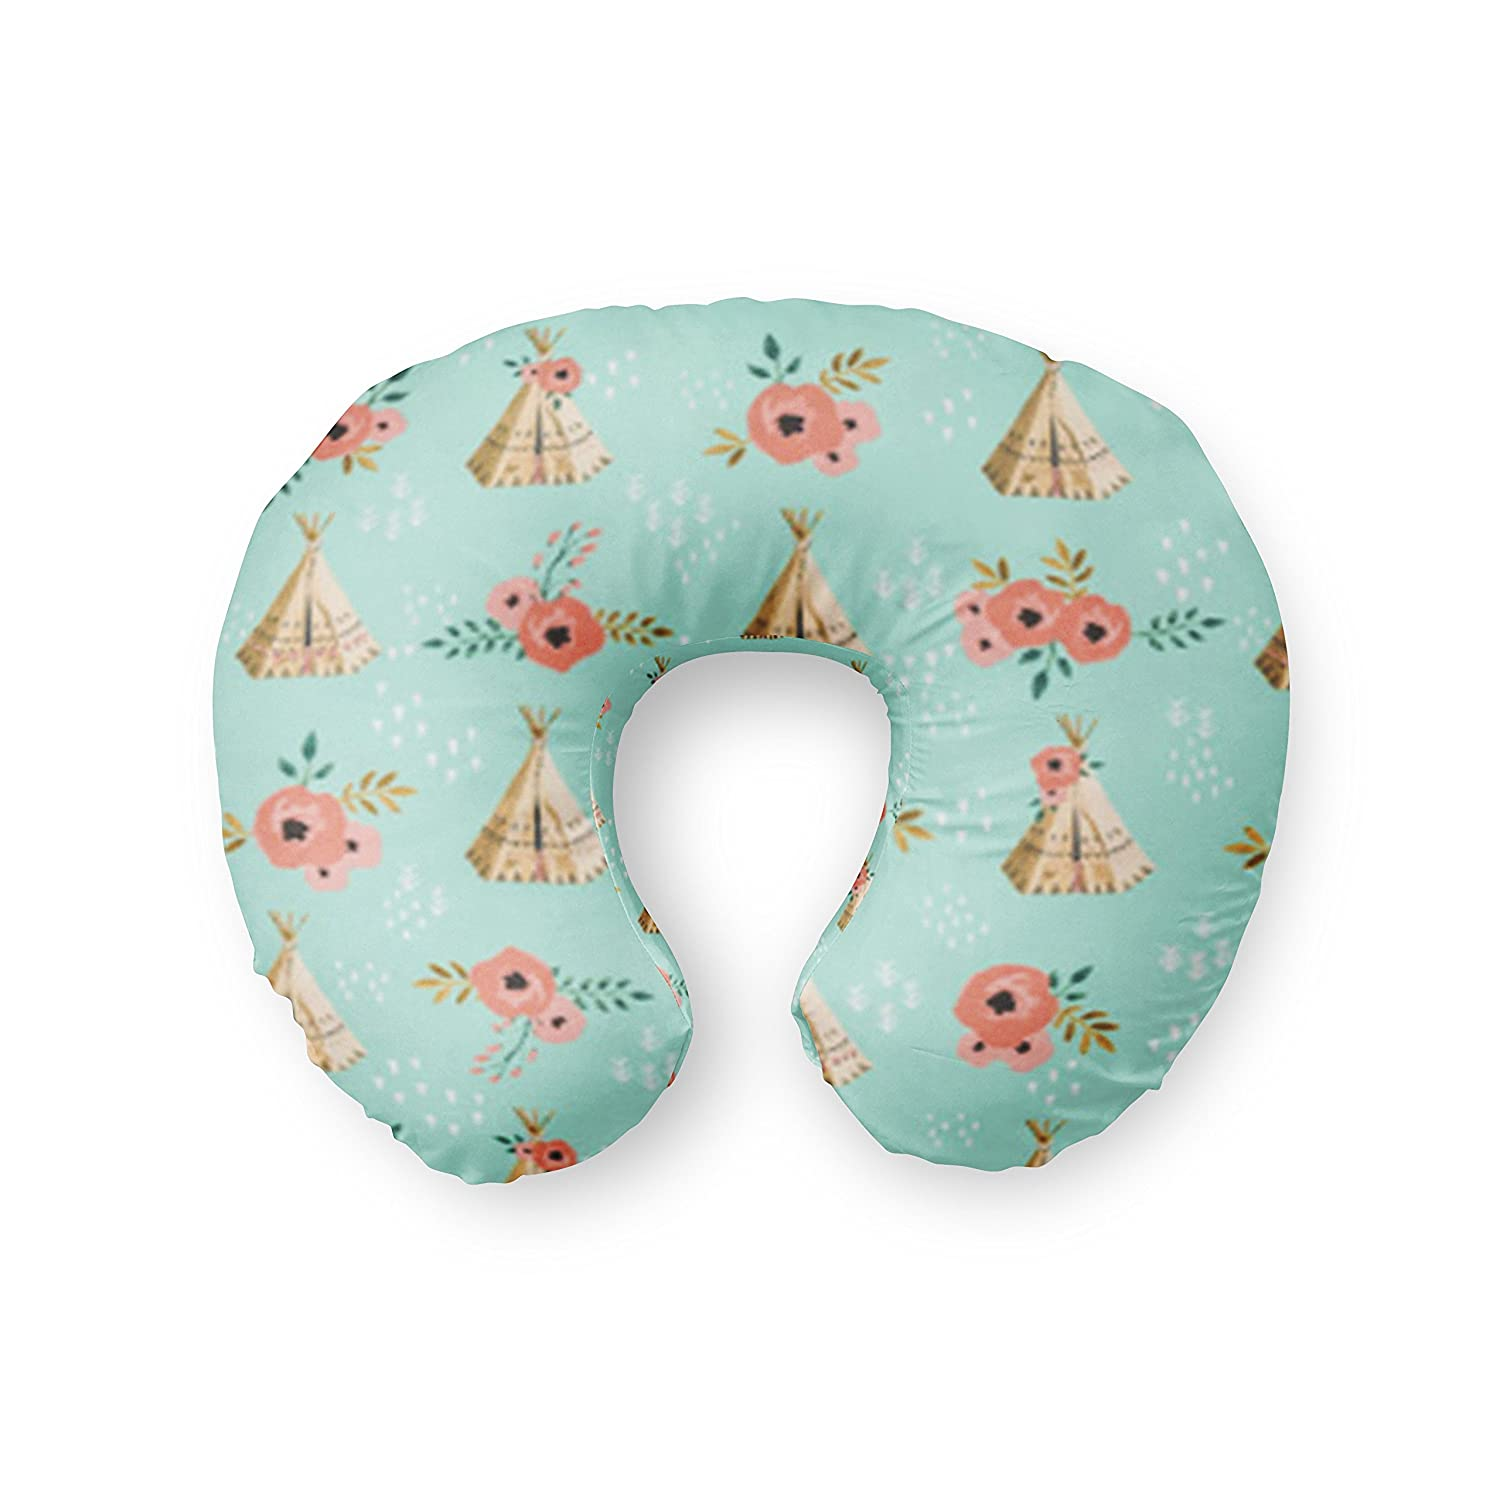 Nursing Pillow Cover in Mint Teepees with coral floral - Handmade in the USA by Twig + Bird Twig+Bird FHTBOP